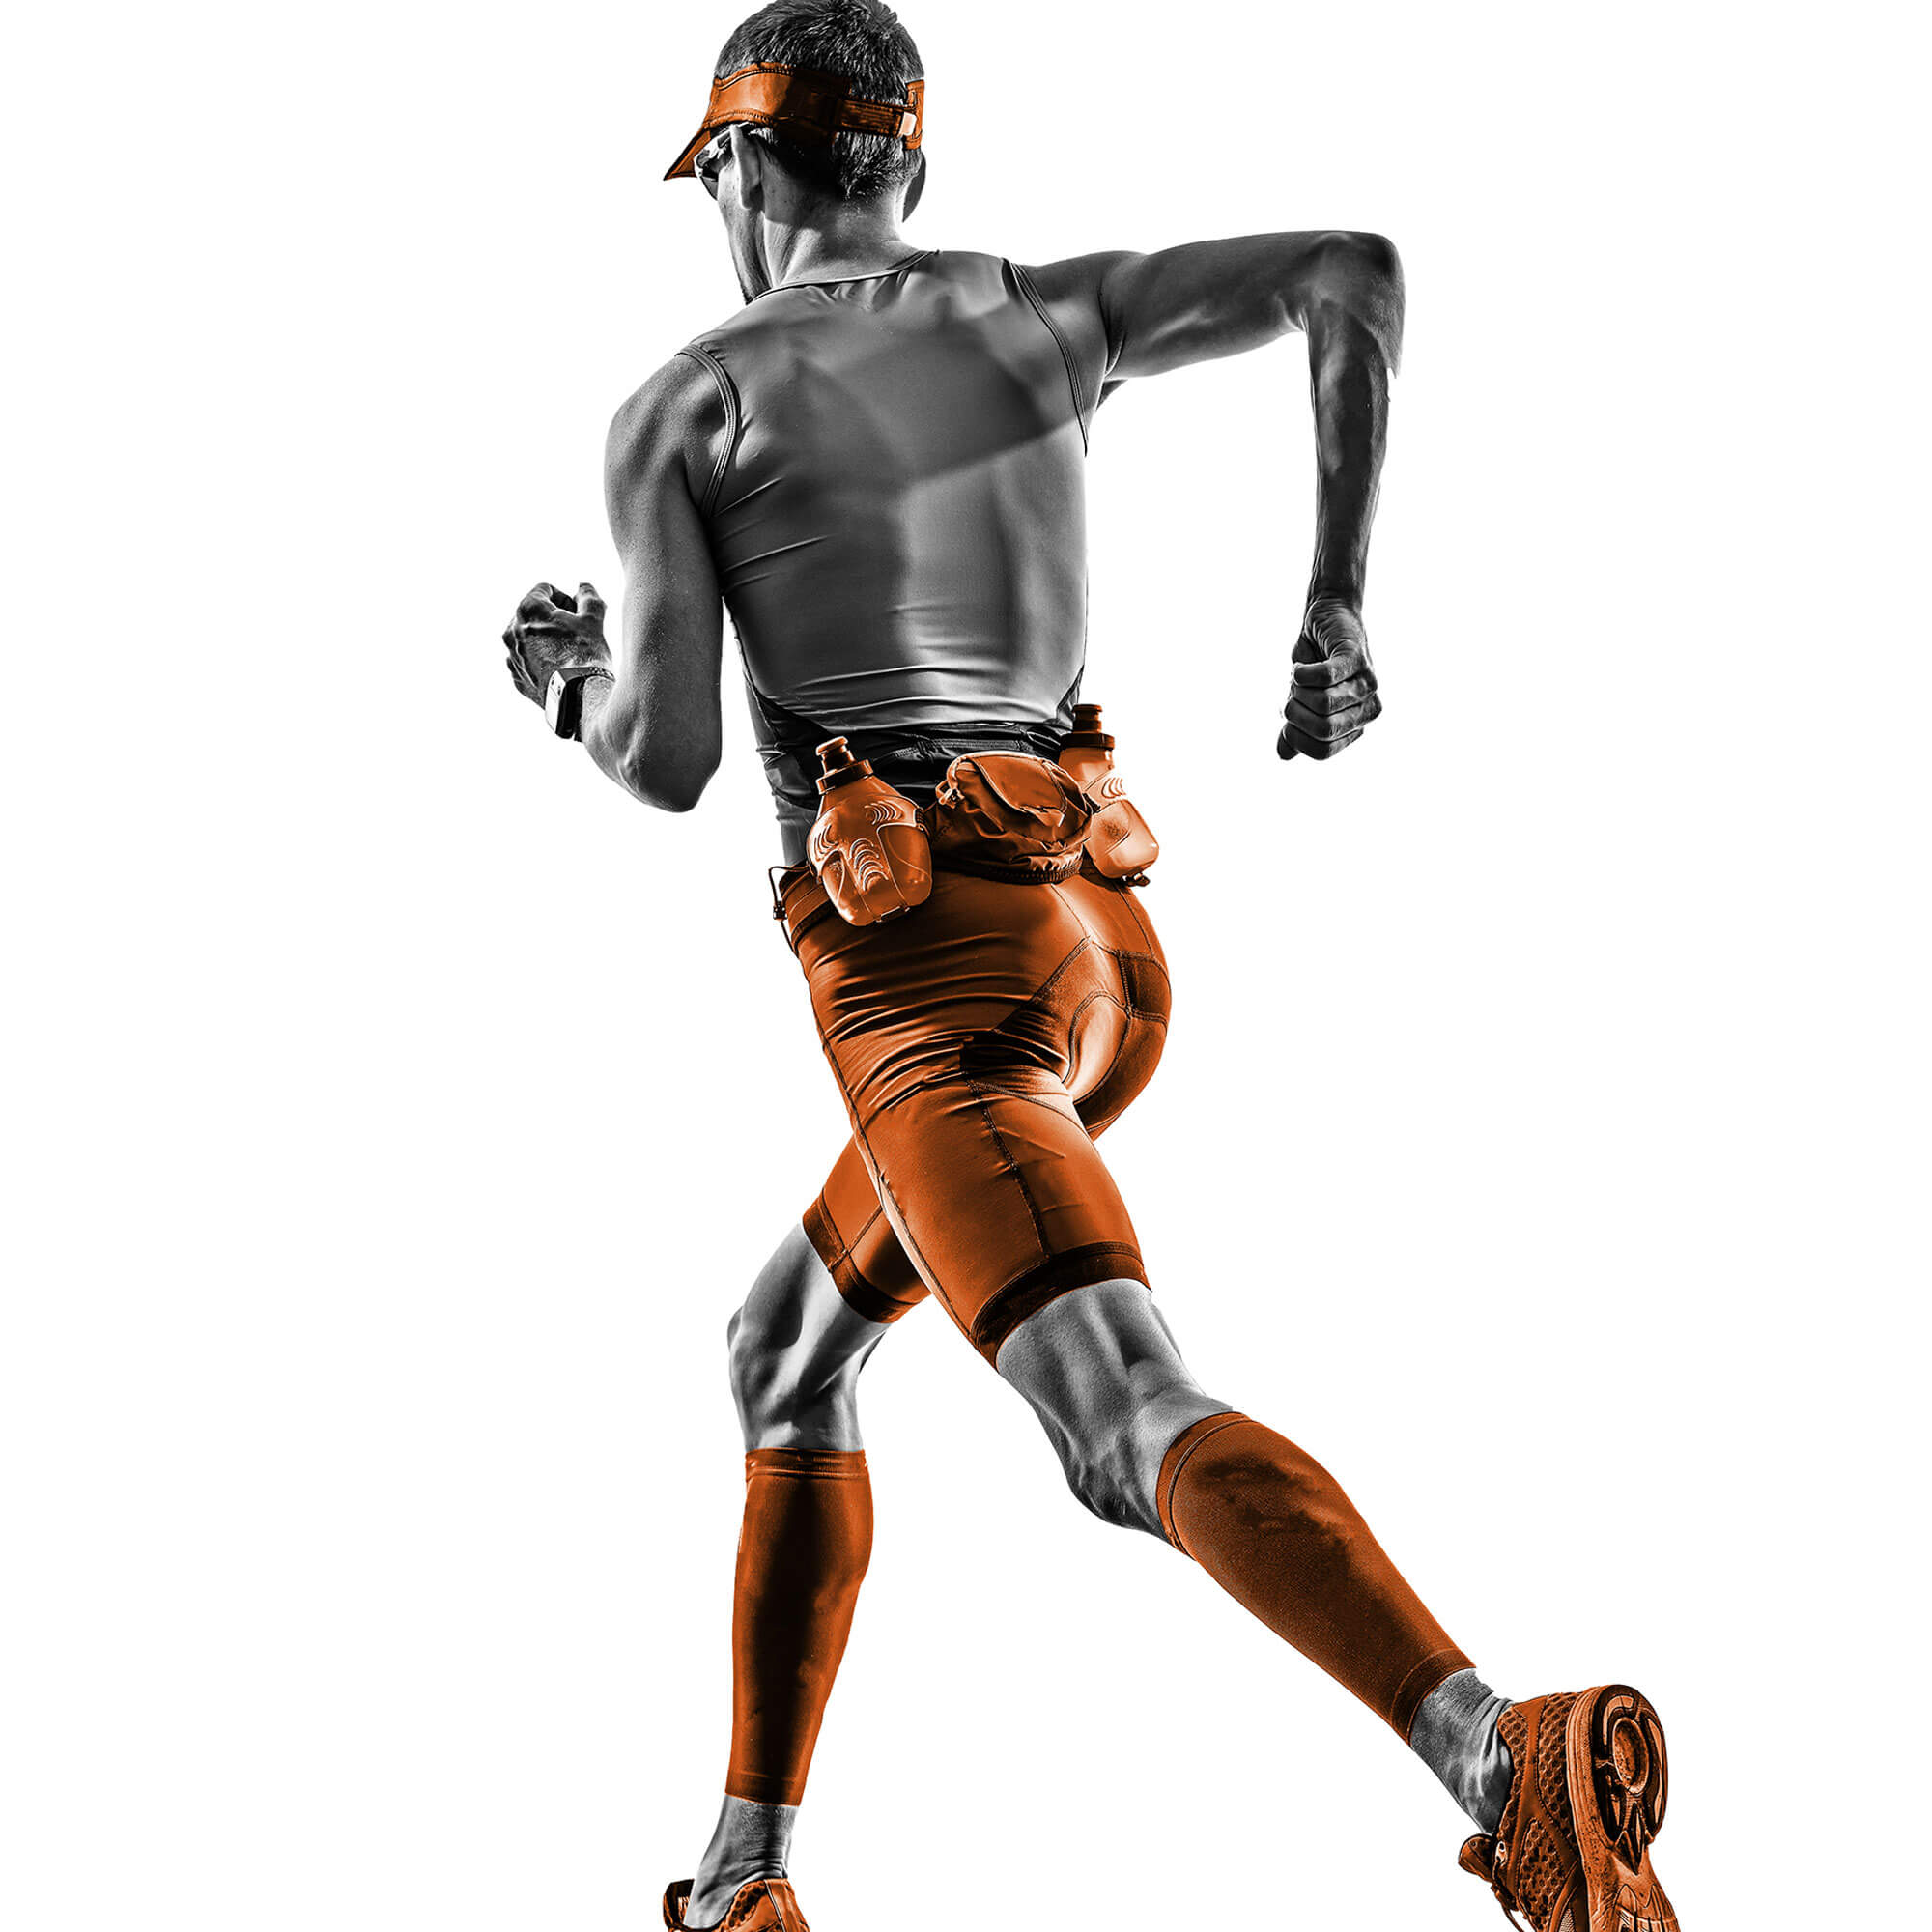 Black and orange image of a male runner